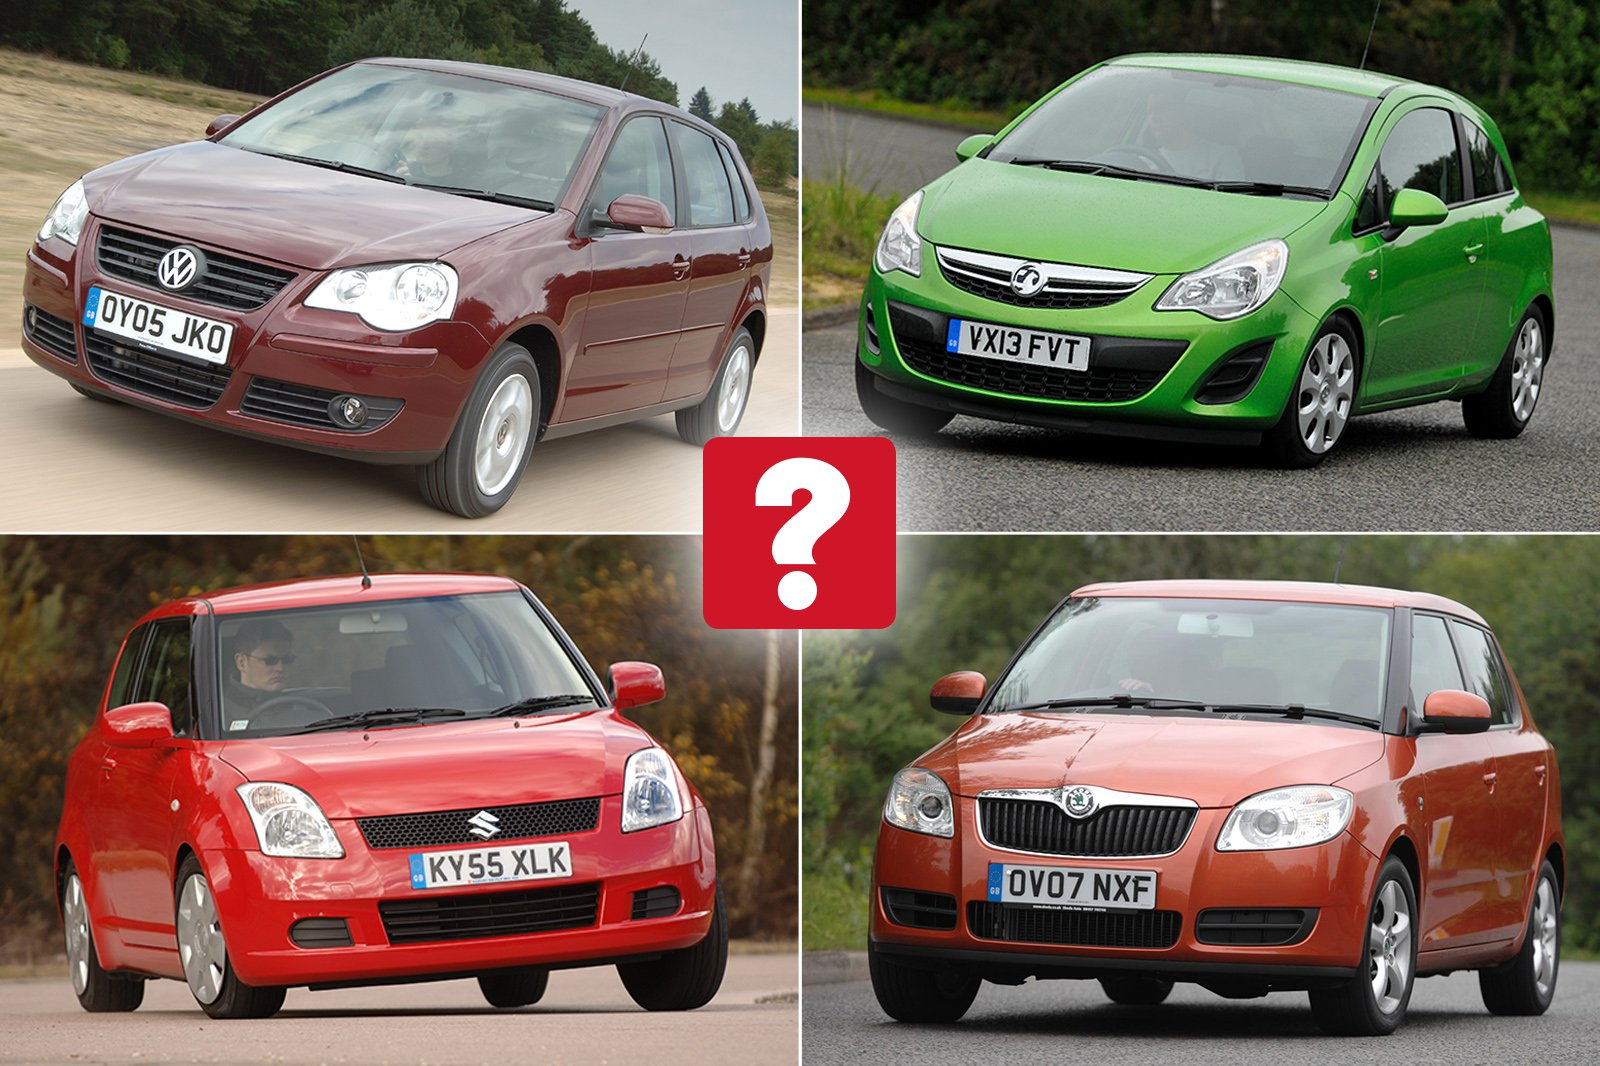 Top 10 best used small cars for less than £2000